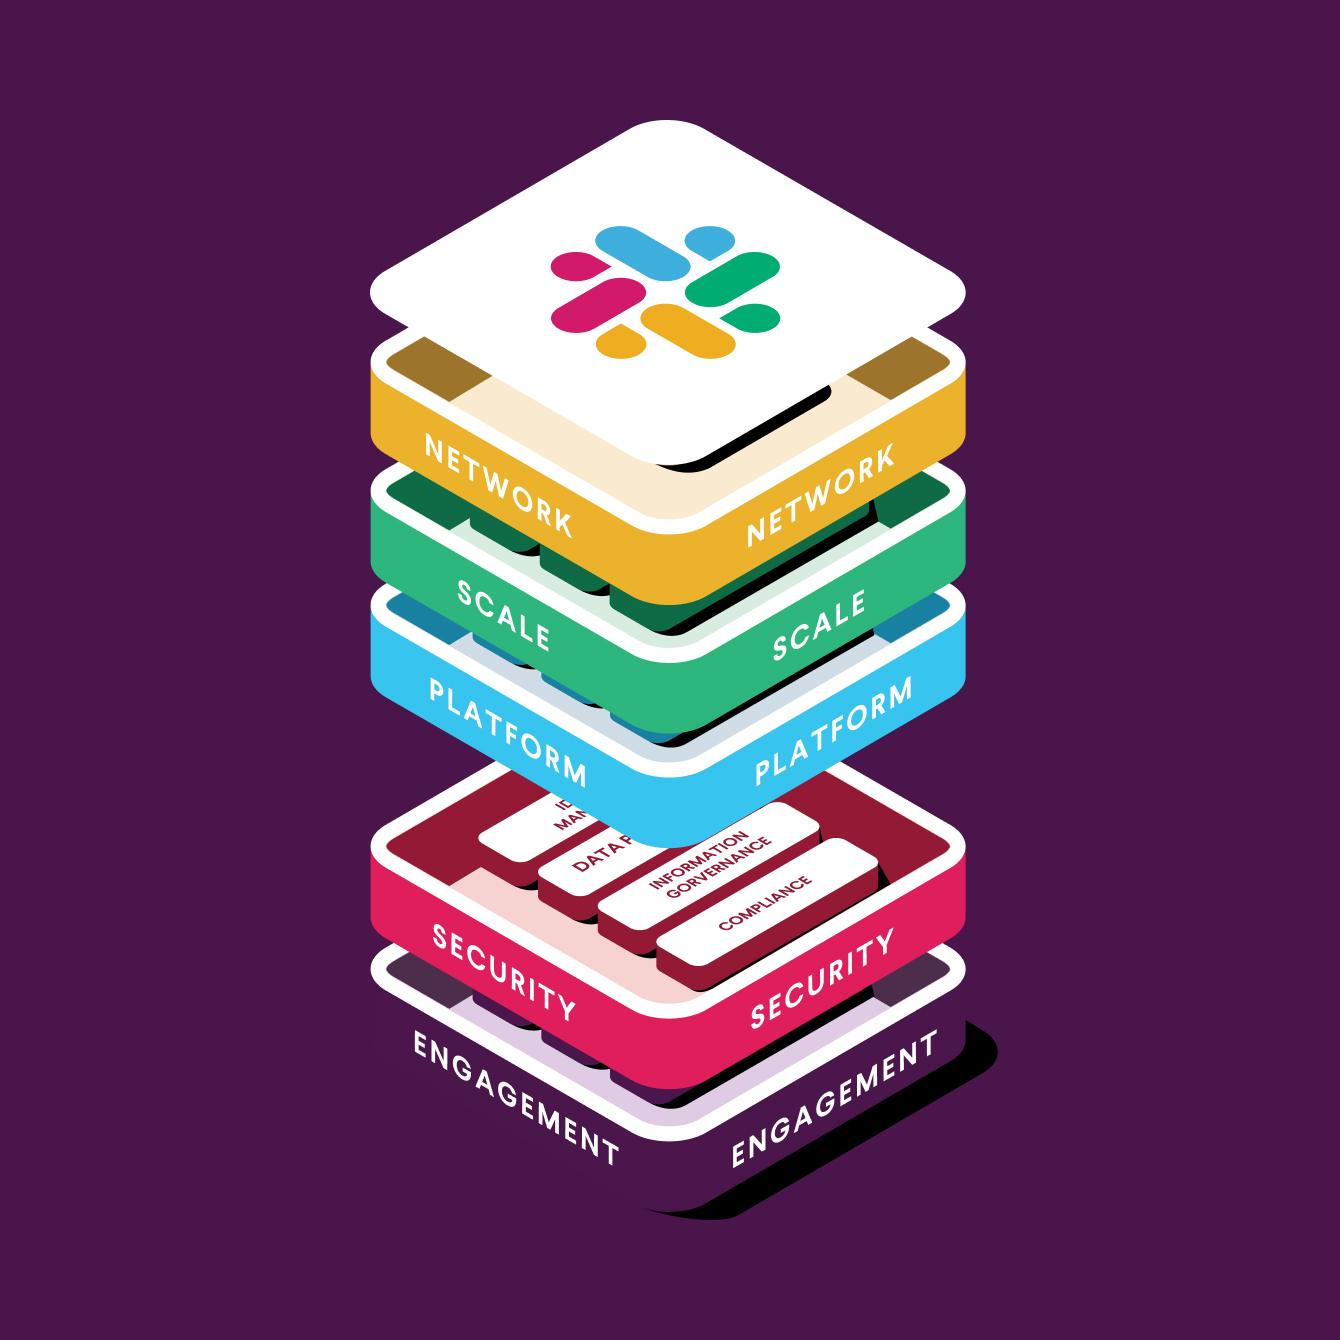 Colorful blocks with Slack logos